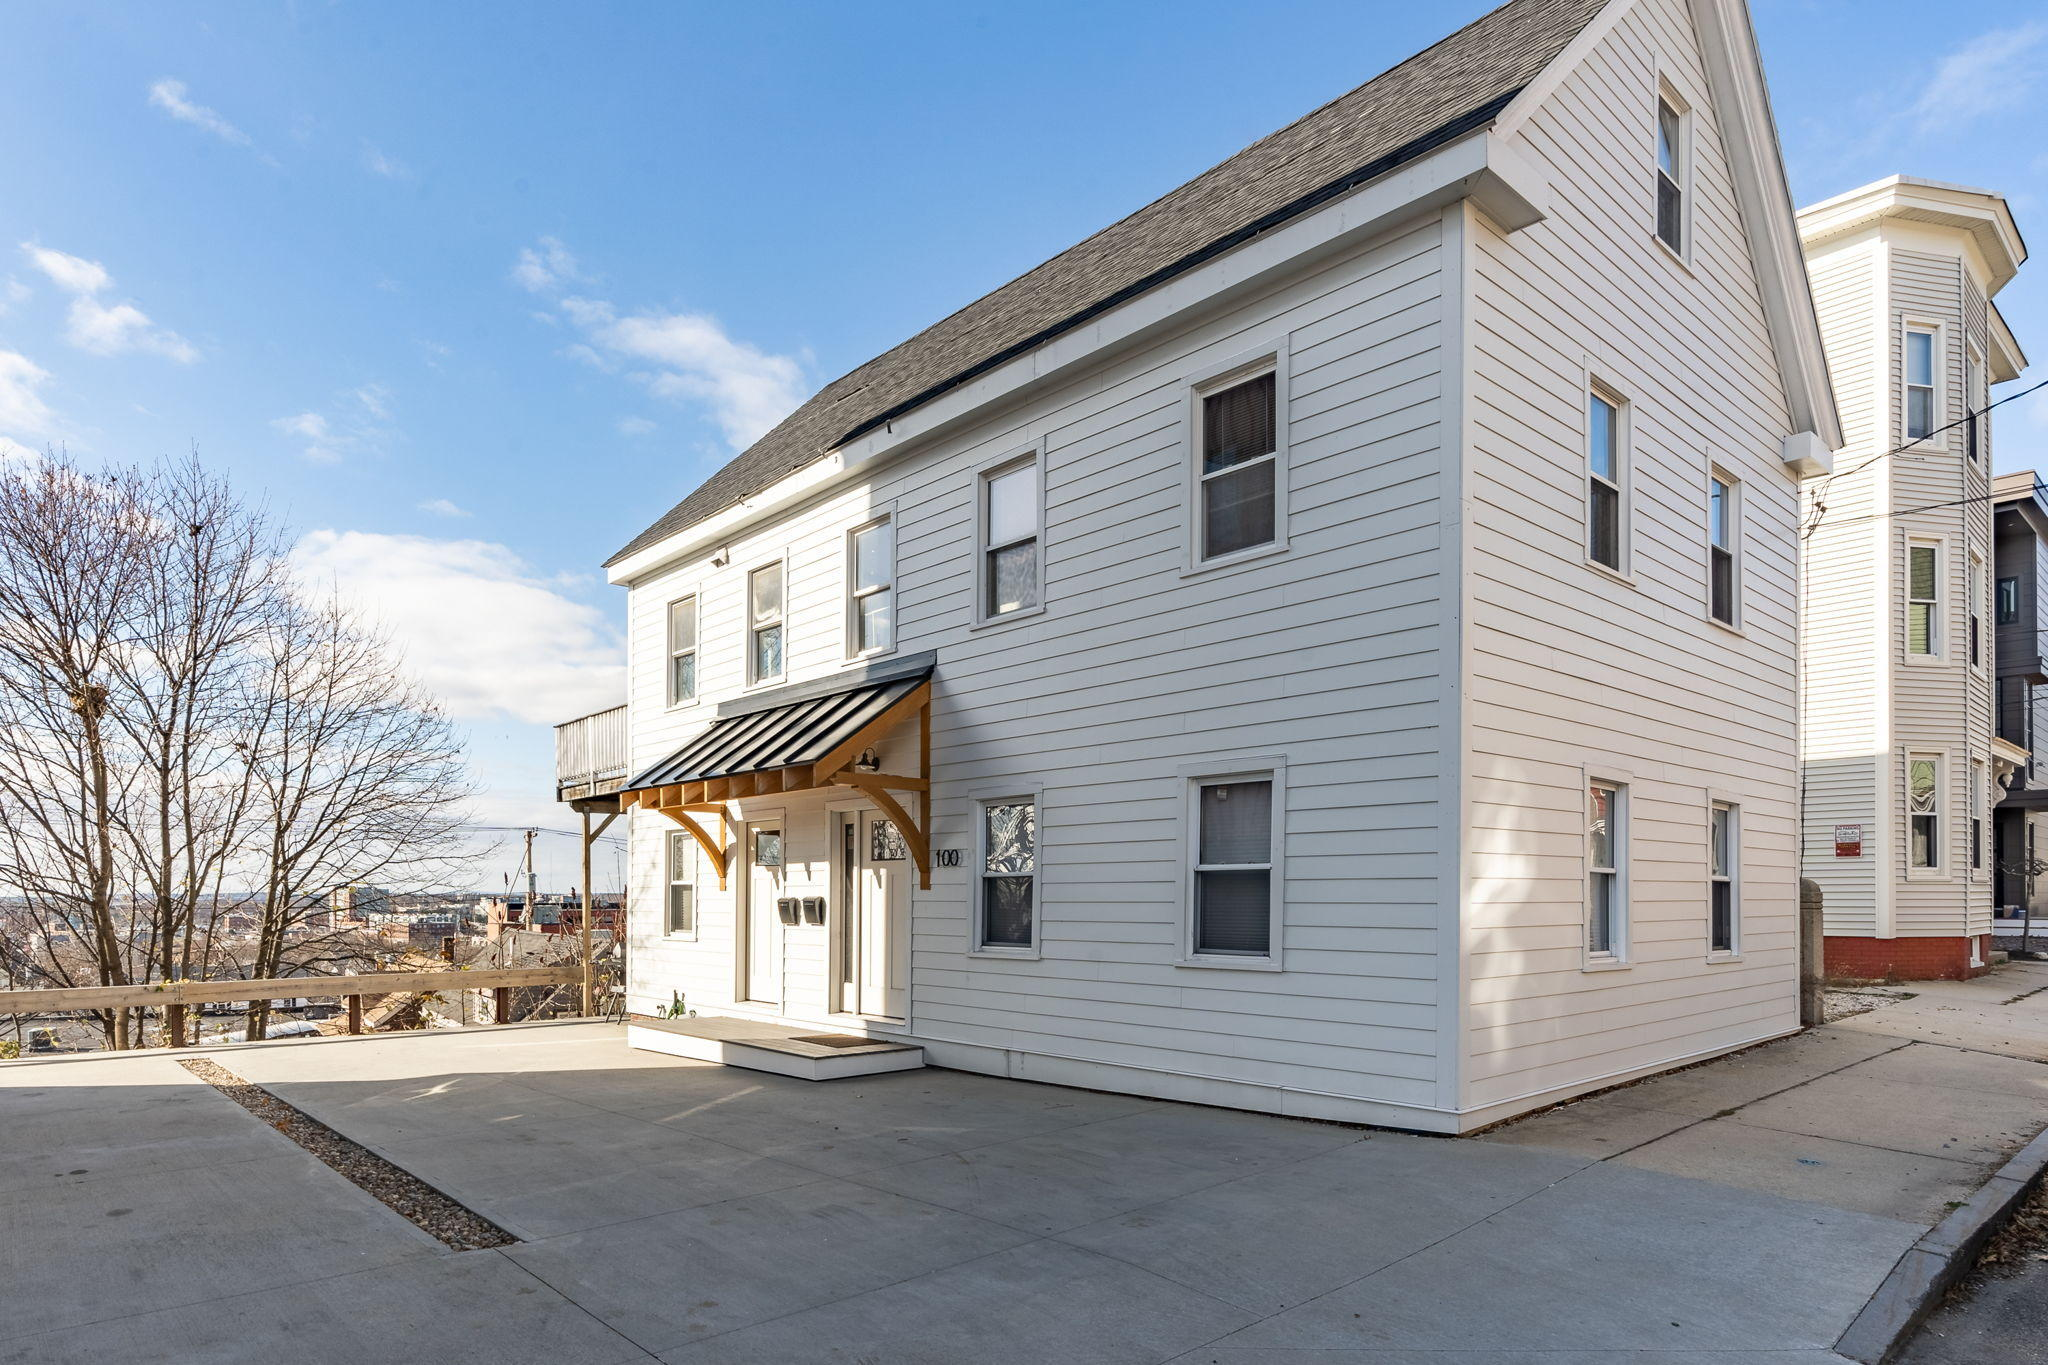 Main image for MLS listing 1476346